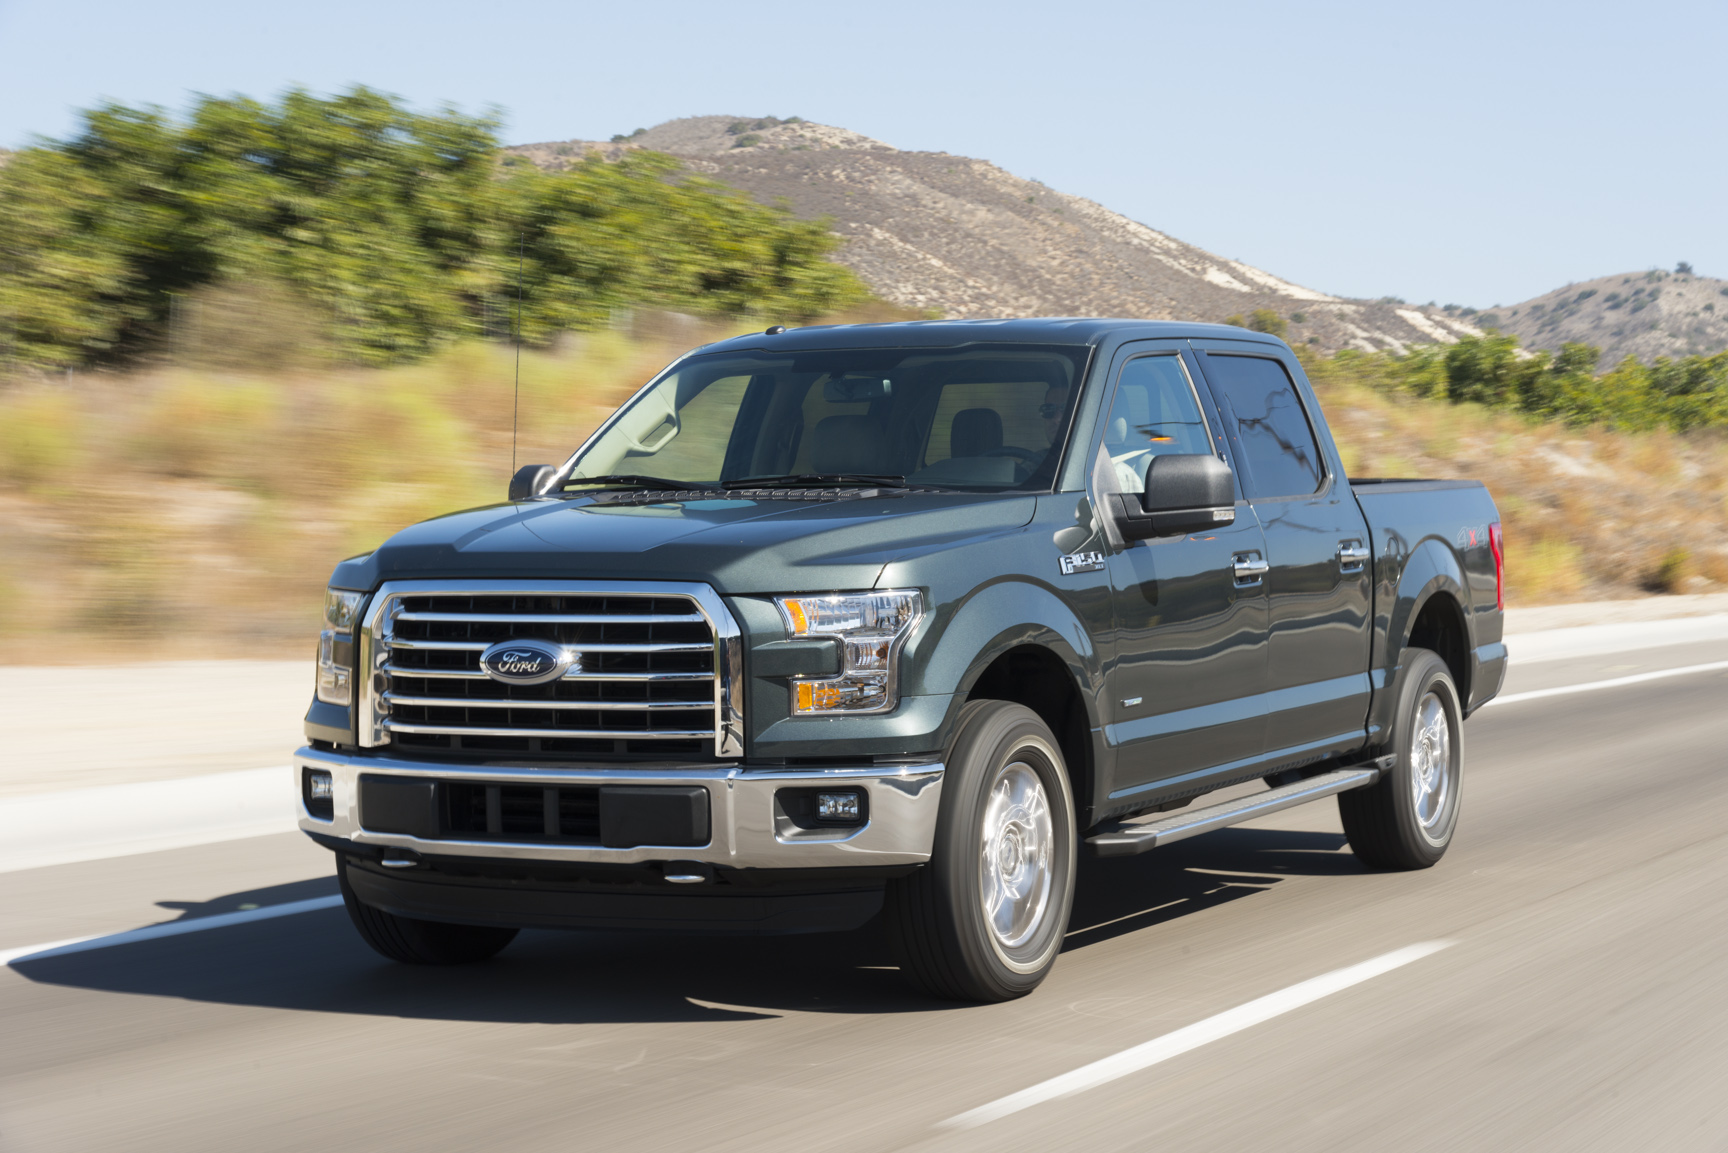 Overall Winner: 2015 Ford F-150: The Ford F-150 stands out for its breakthrough aluminum body, a weight-saving strategy that enables its turbocharged Ecoboost engines - another breakthrough - to be even more effective and impressive.